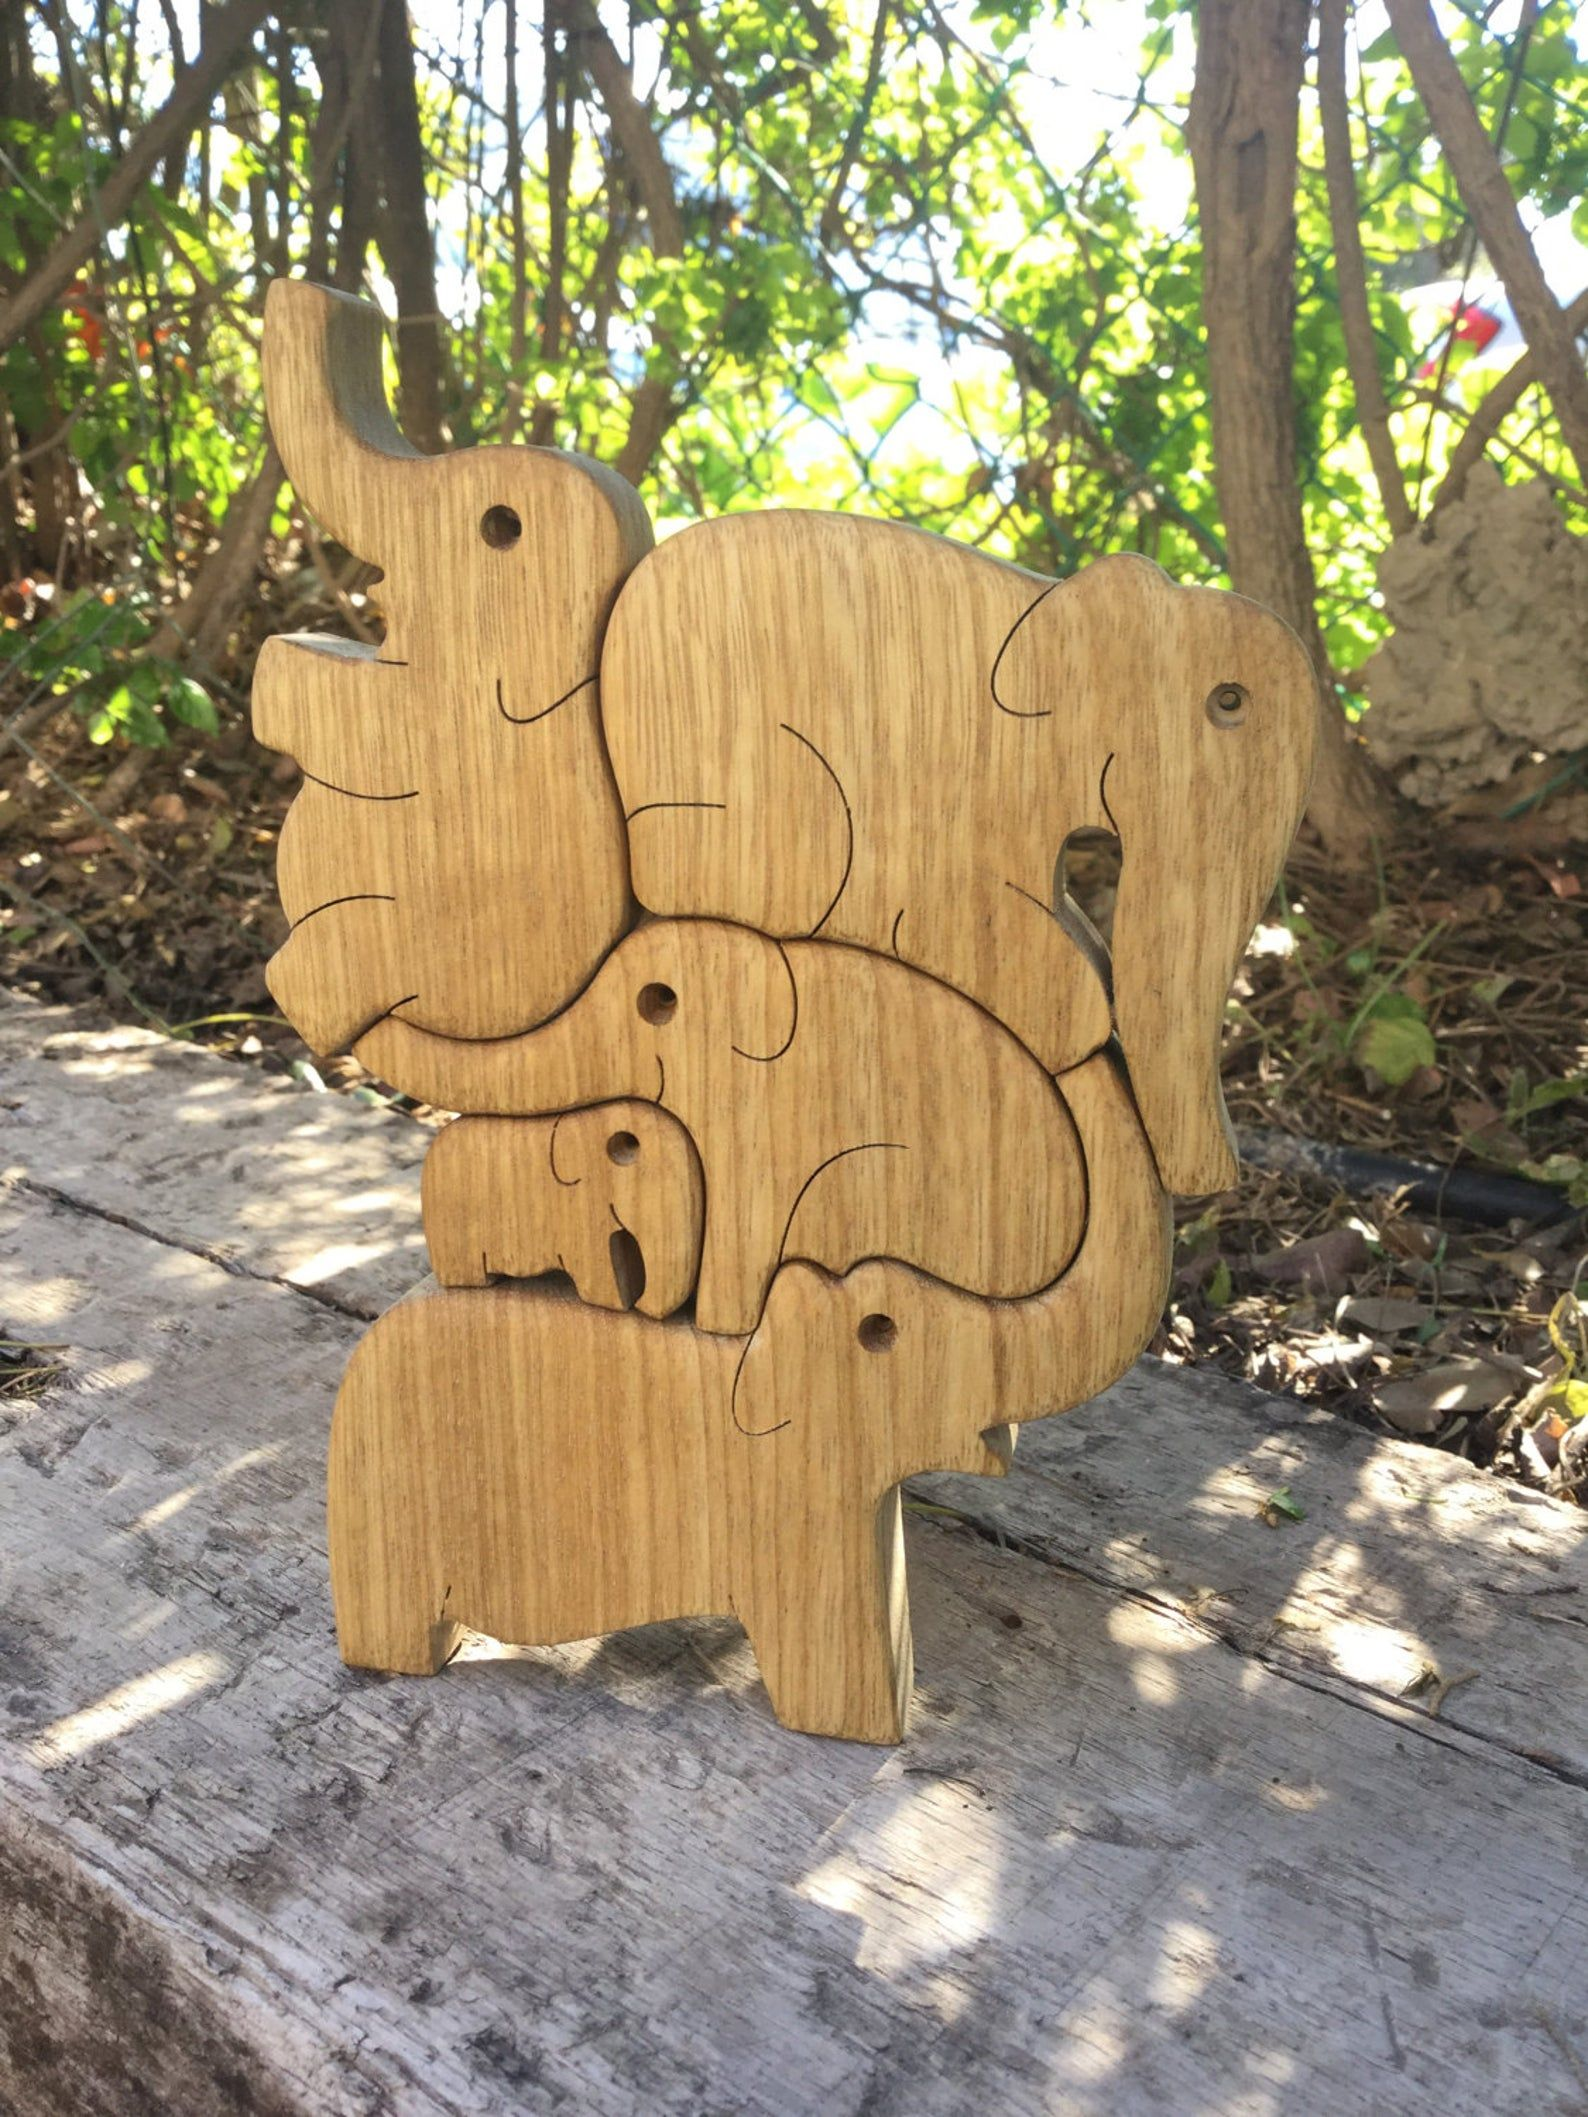 Elephants puzzle wooden tower puzzle pyramid wooden game